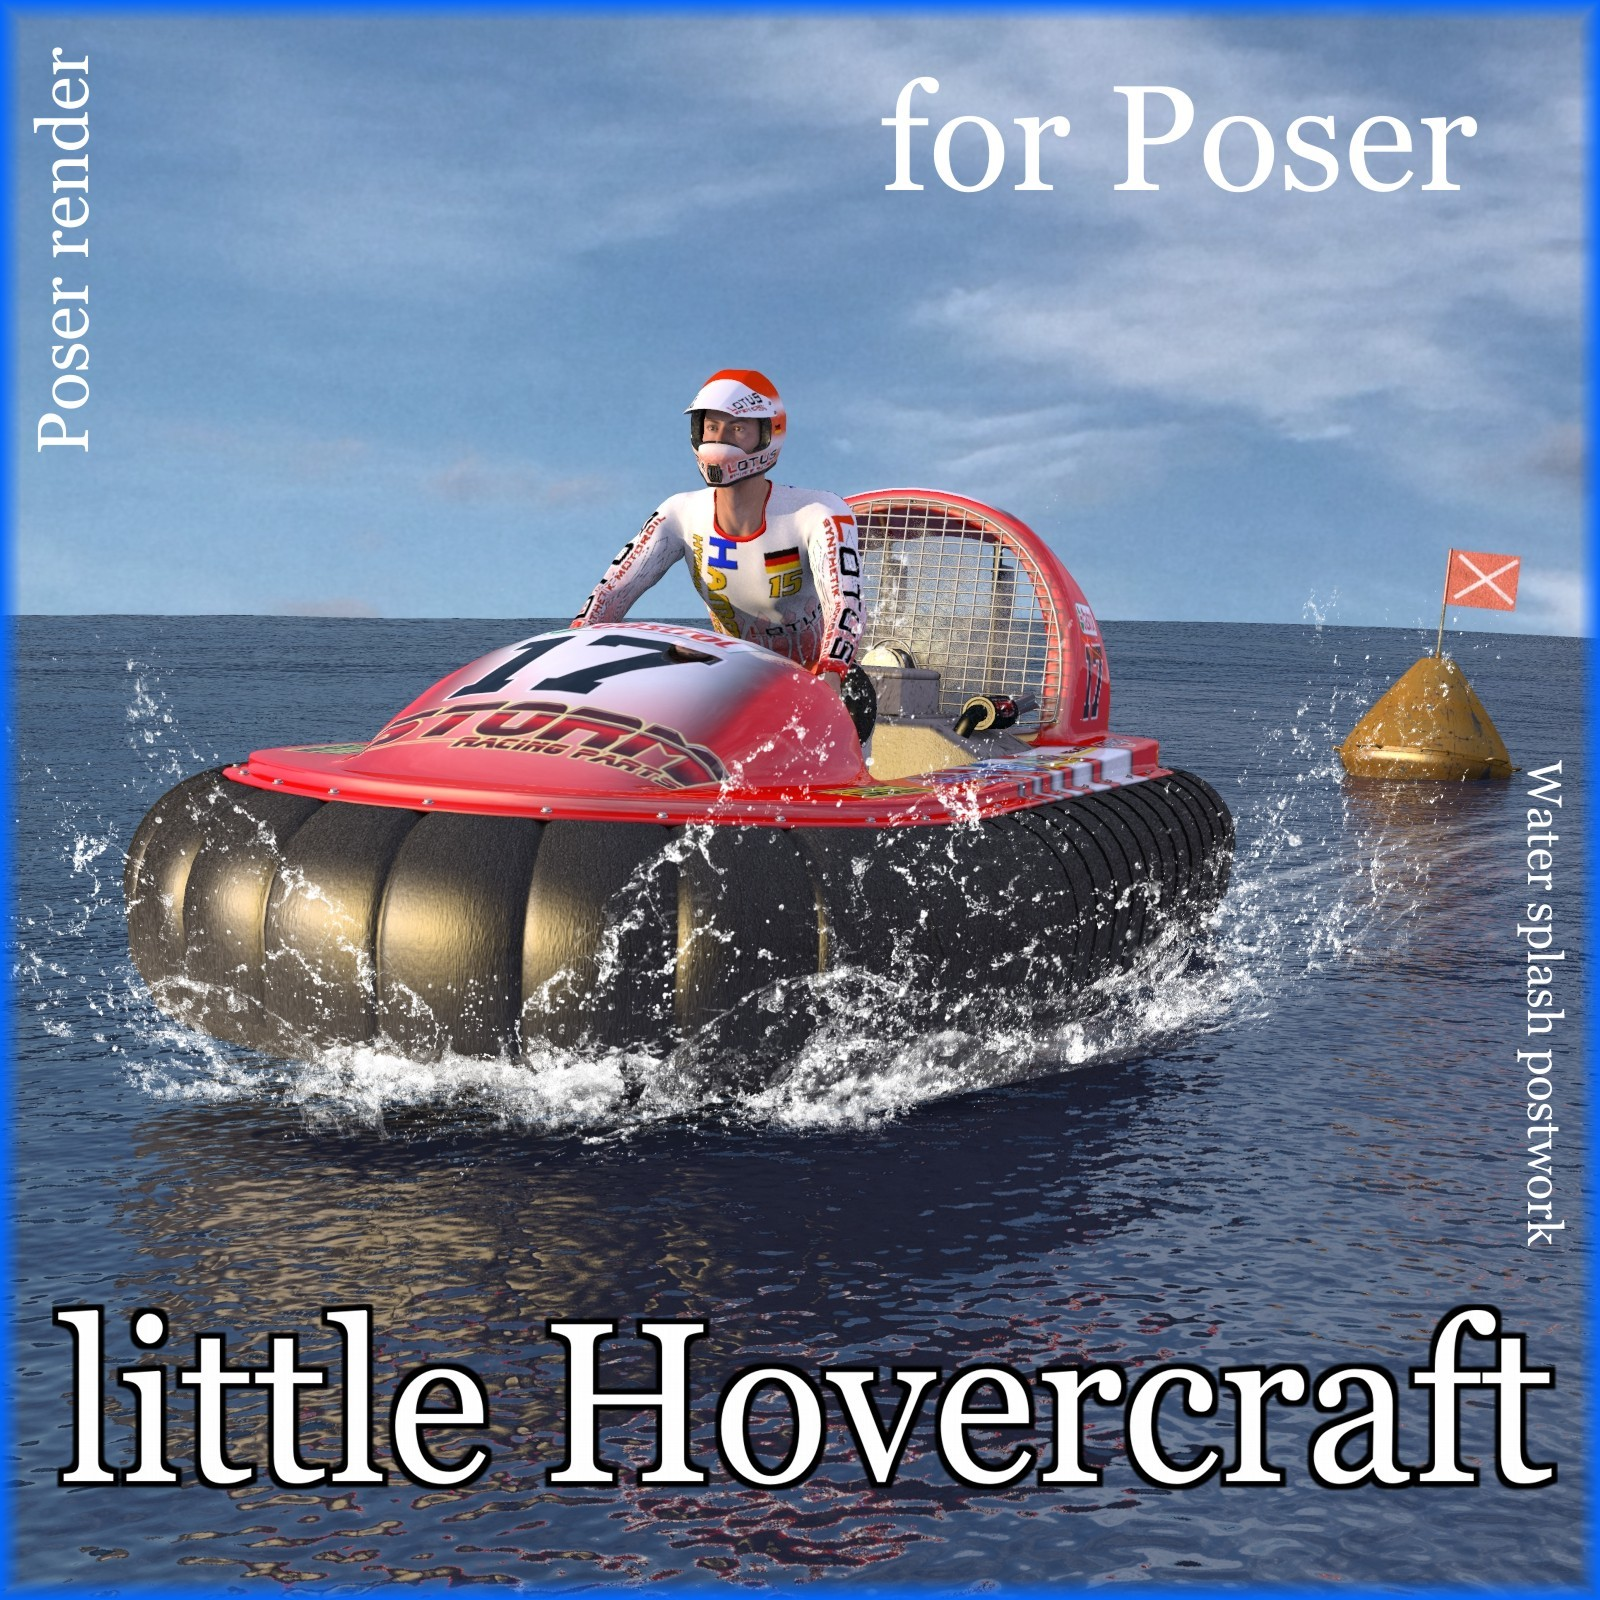 NM-Little hovercraft